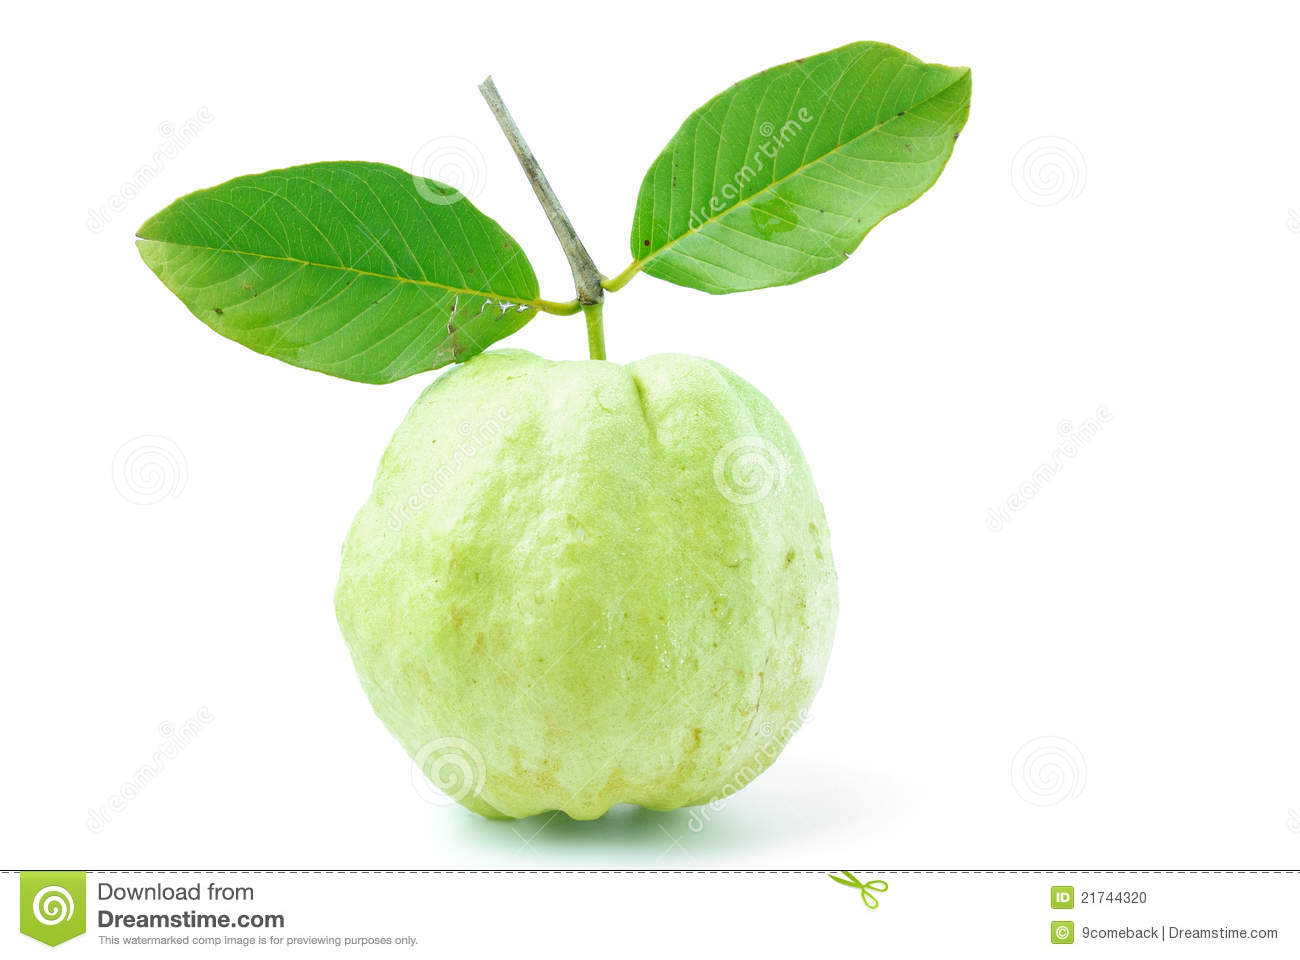 Guava Fruit Has Green Skin And White Flesh Vitamin C